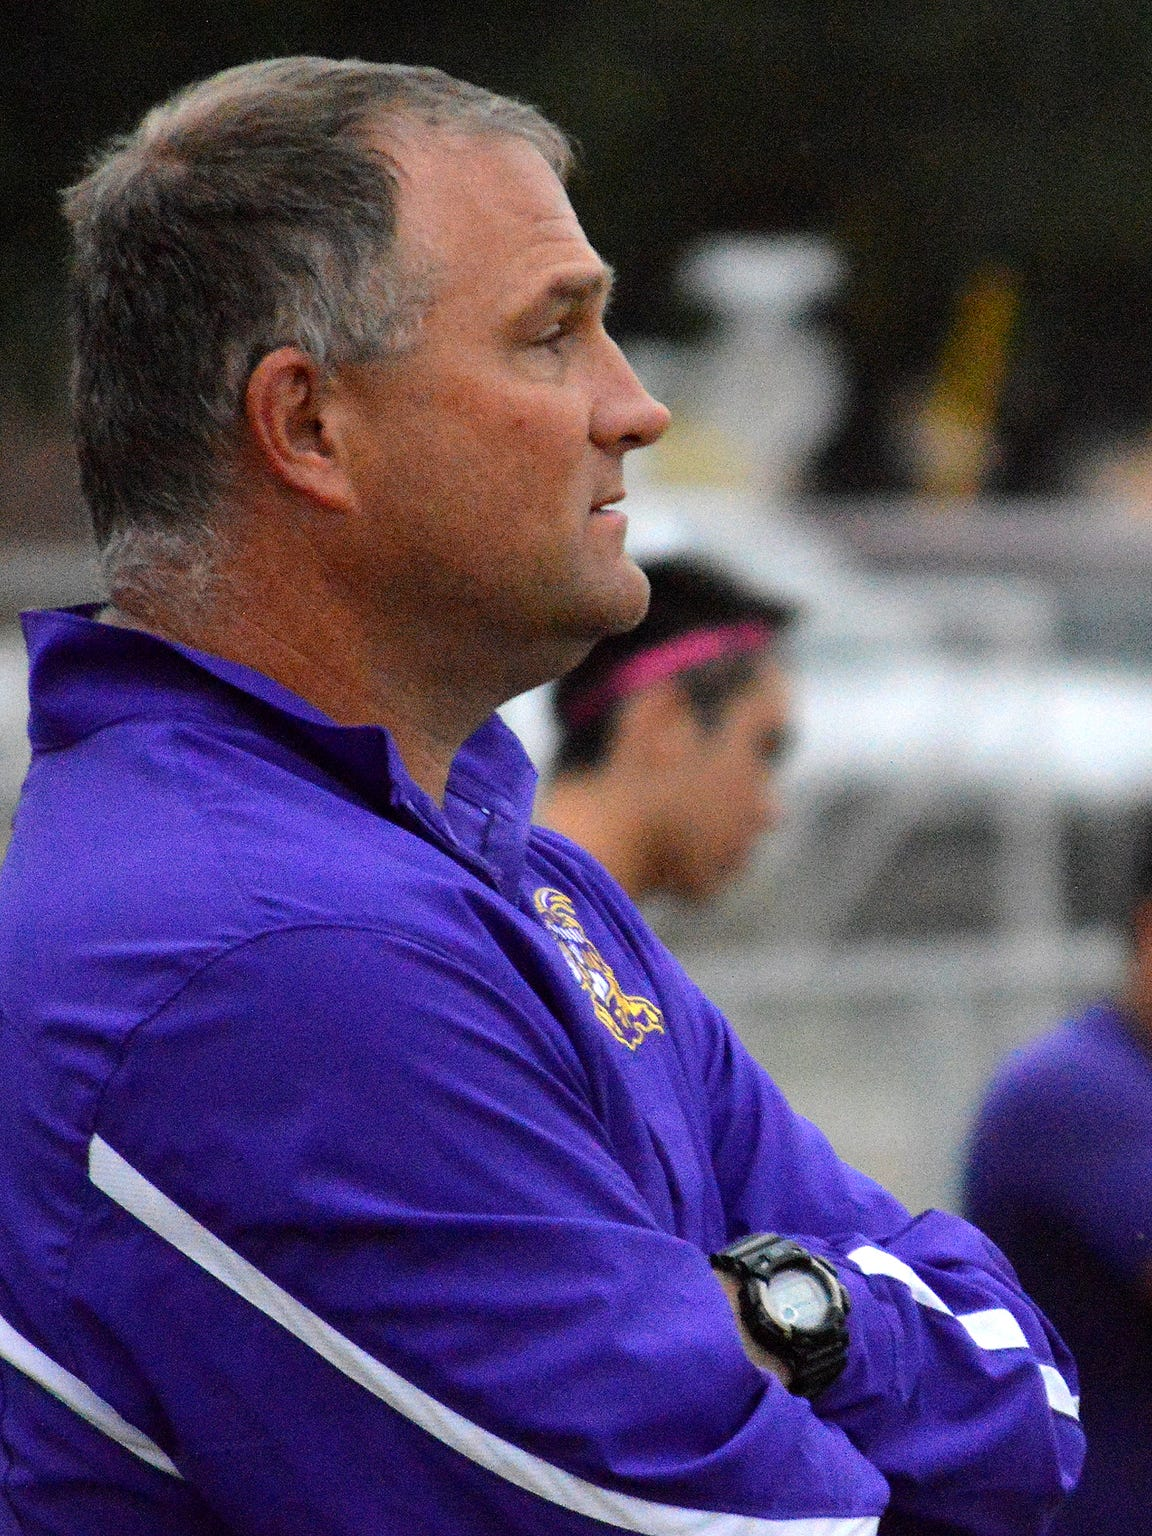 Munday head coach Patrick Corcoran retired following the 2019 season. Corcoran spent 19 years at Munday, the last 15 as head coach in a stint that included nine playoff appearances, five district titles and state championships in 2007 and 2012.